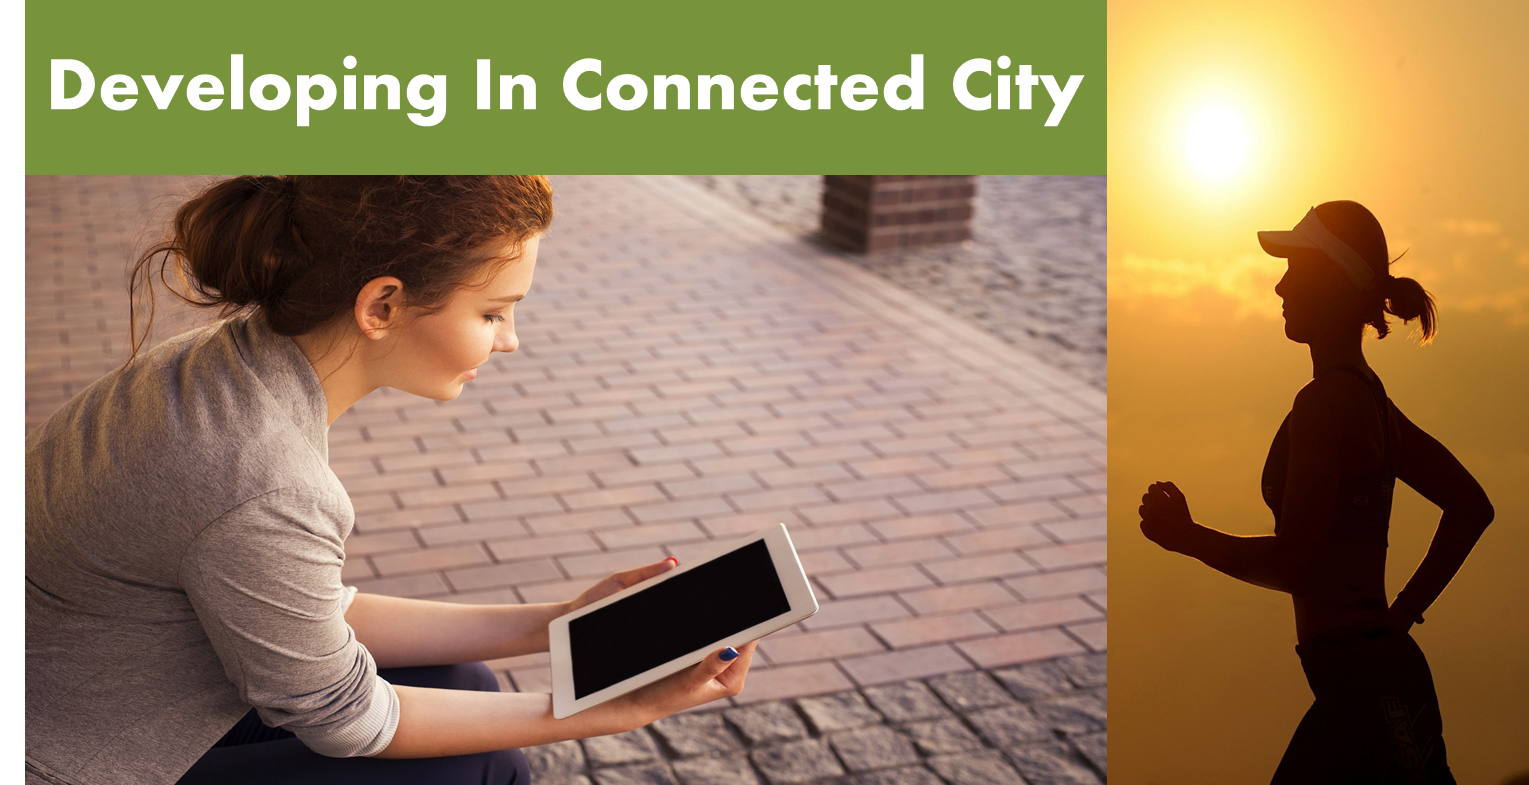 Developing In Connected City